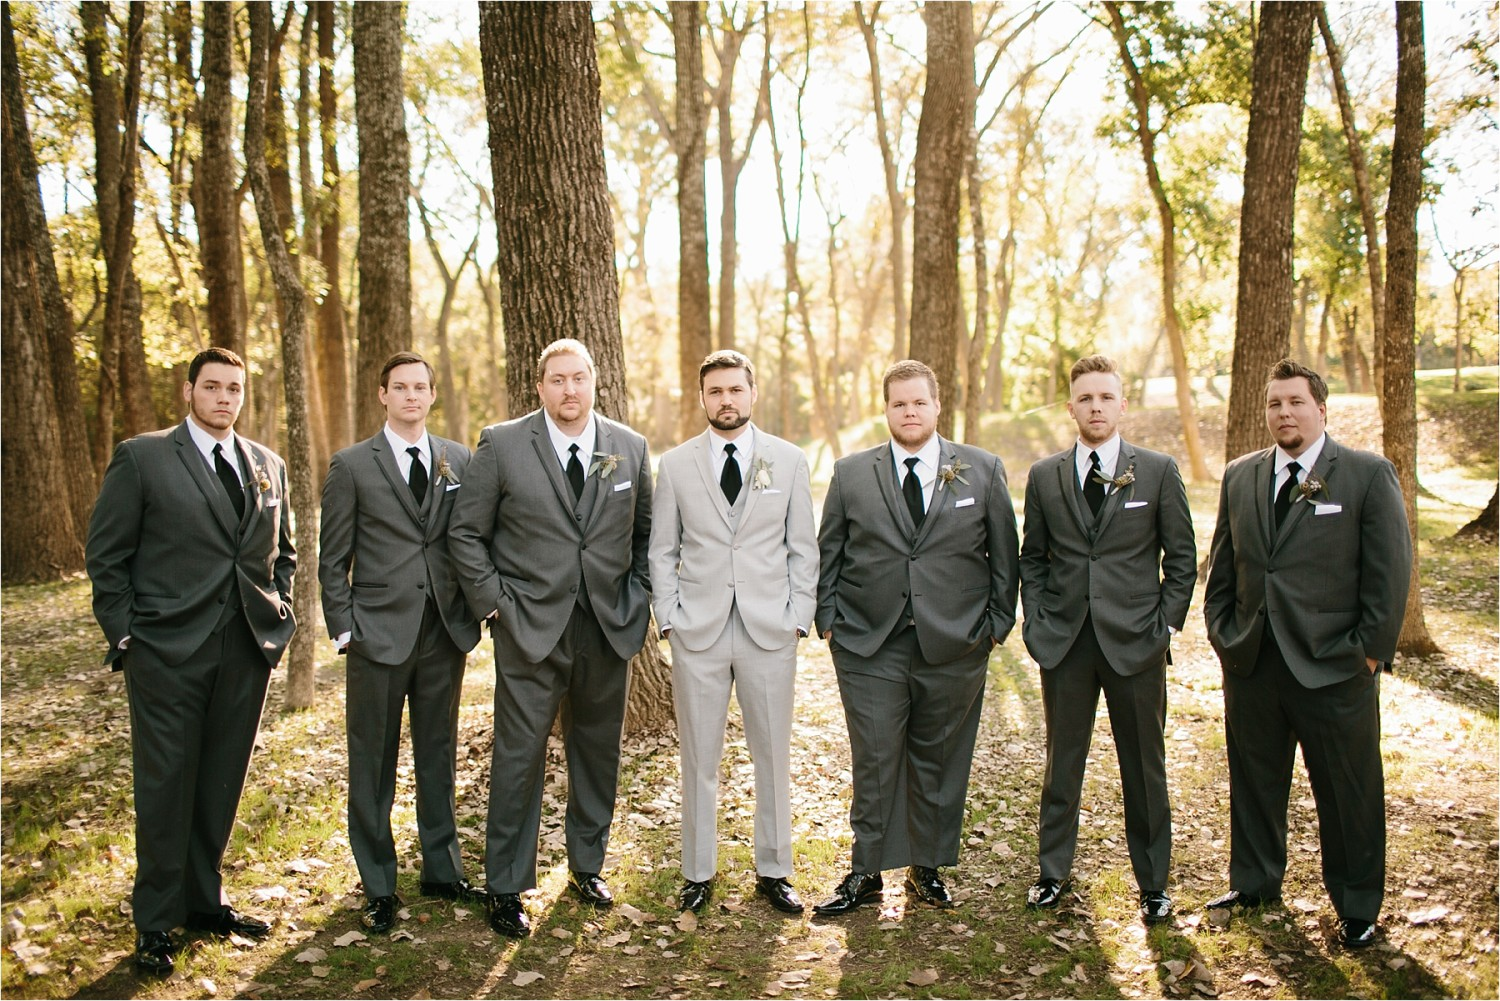 brad-lara-__-a-grey-and-blush-pink-intimate-wedding-at-hidden-waters-event-center-in-waxahachie-tx-by-north-texas-wedding-photographer-rachel-meagan-photography-_-030